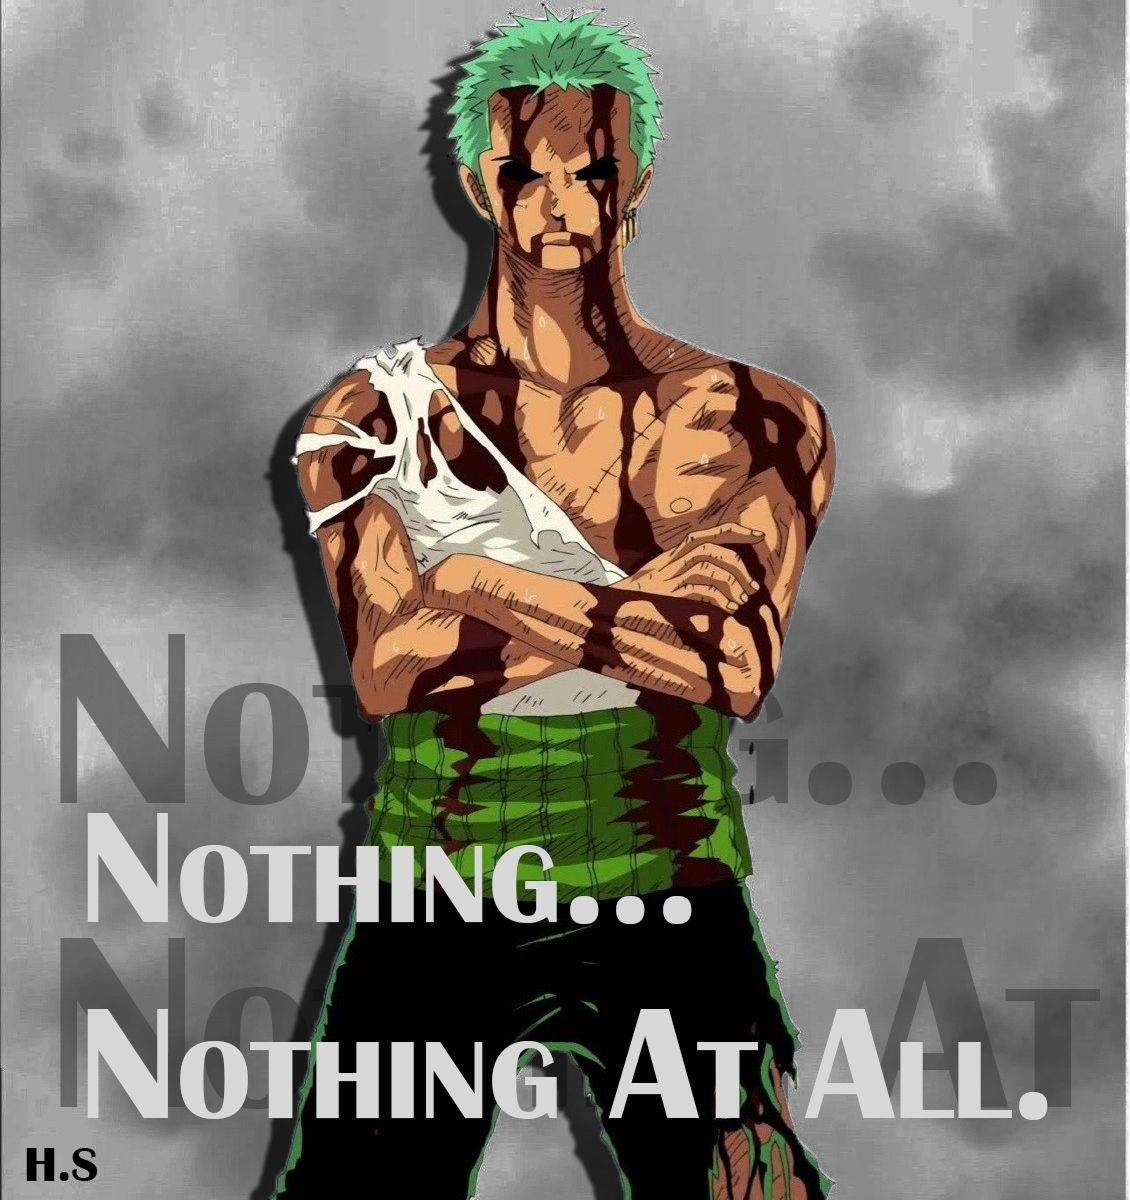 Nothing... Nothing at all. Roronoa Zoro - One Piece  By Haroun SMIDA